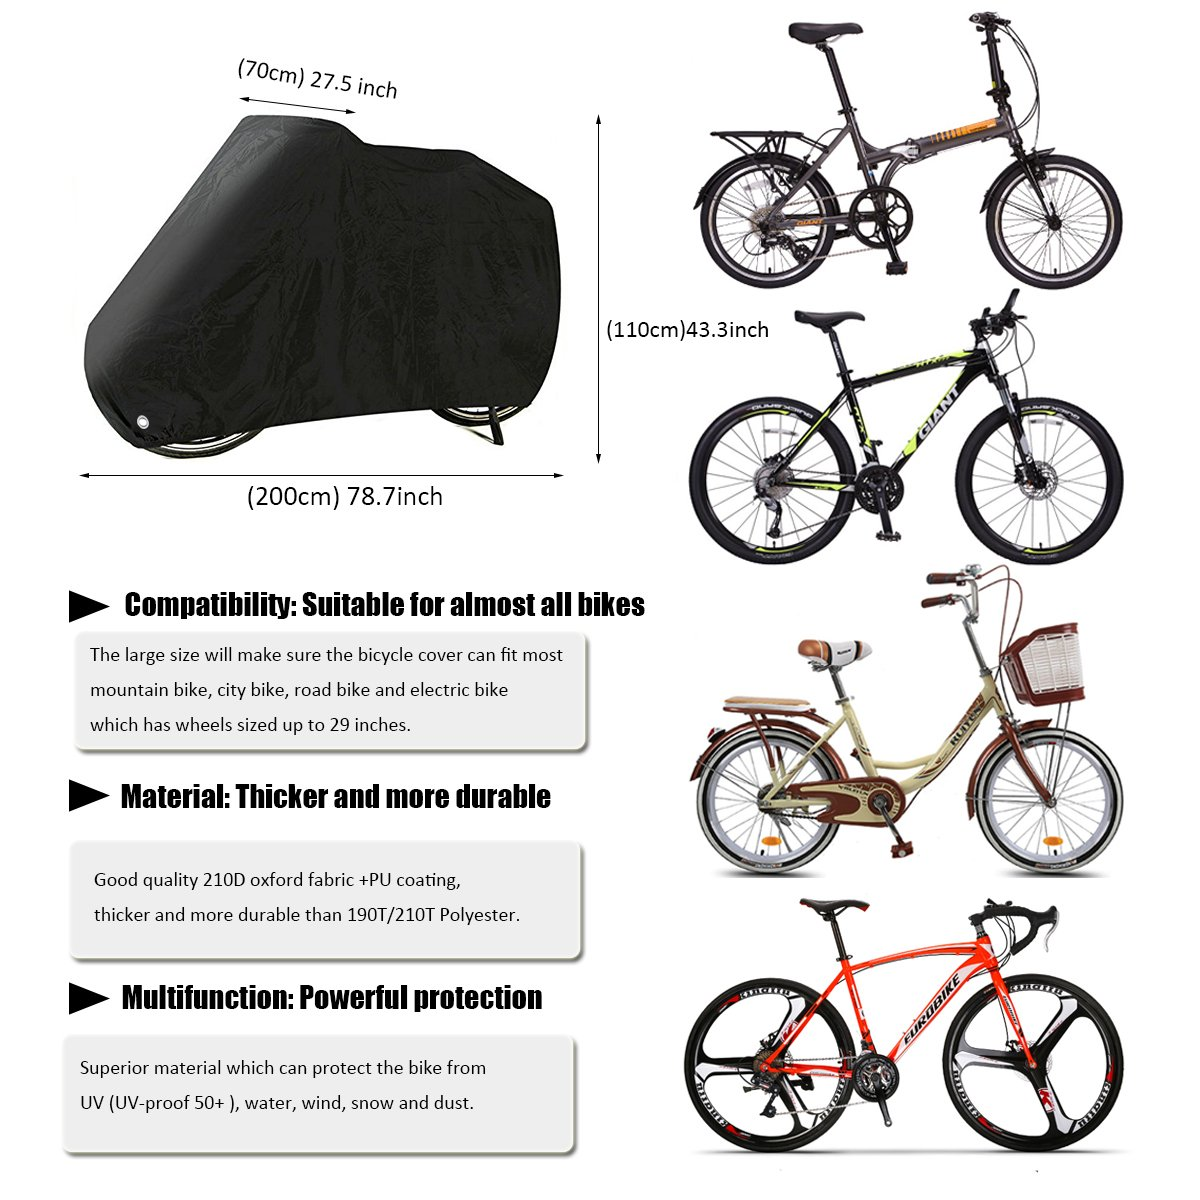 AIMUHO Bike Cover 210D Oxford Fabric Waterproof Bicycle Cover with Lock Holes, Outdoor Bicycle Rain Cover UV Protection for All Weather Conditions/XL Size by AIMUHO (Image #3)